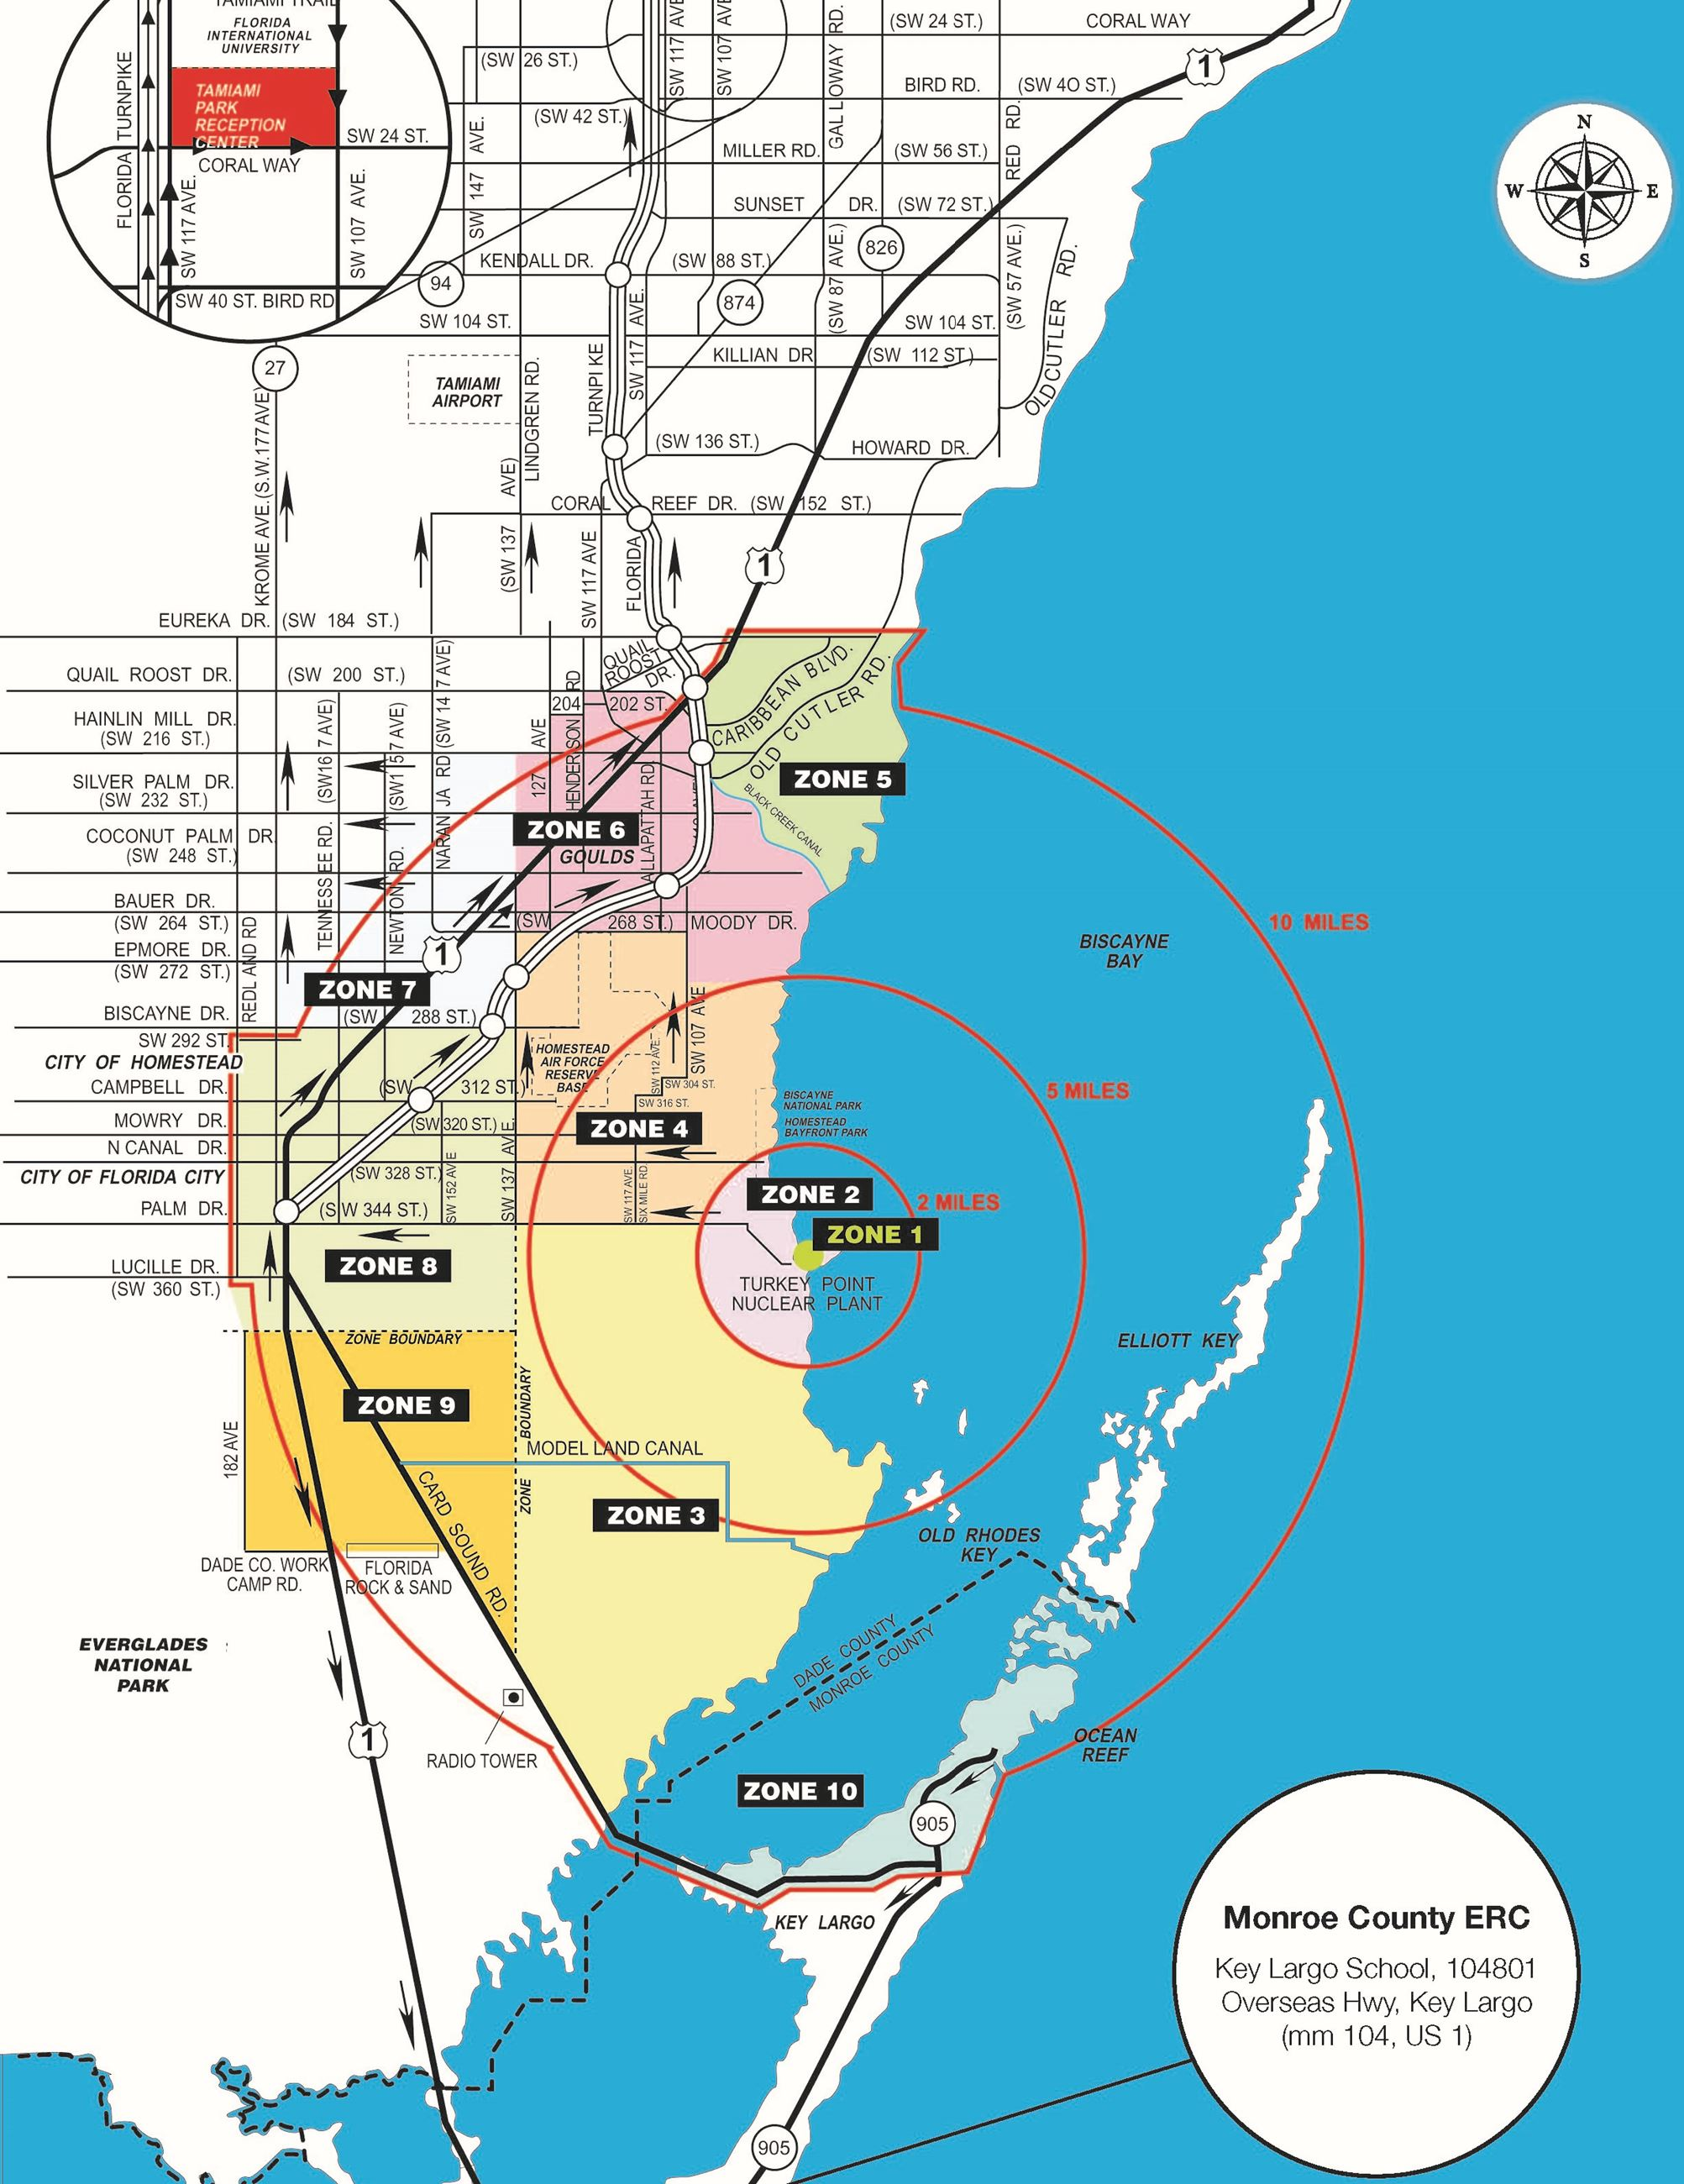 Turkey Point planning map with zones